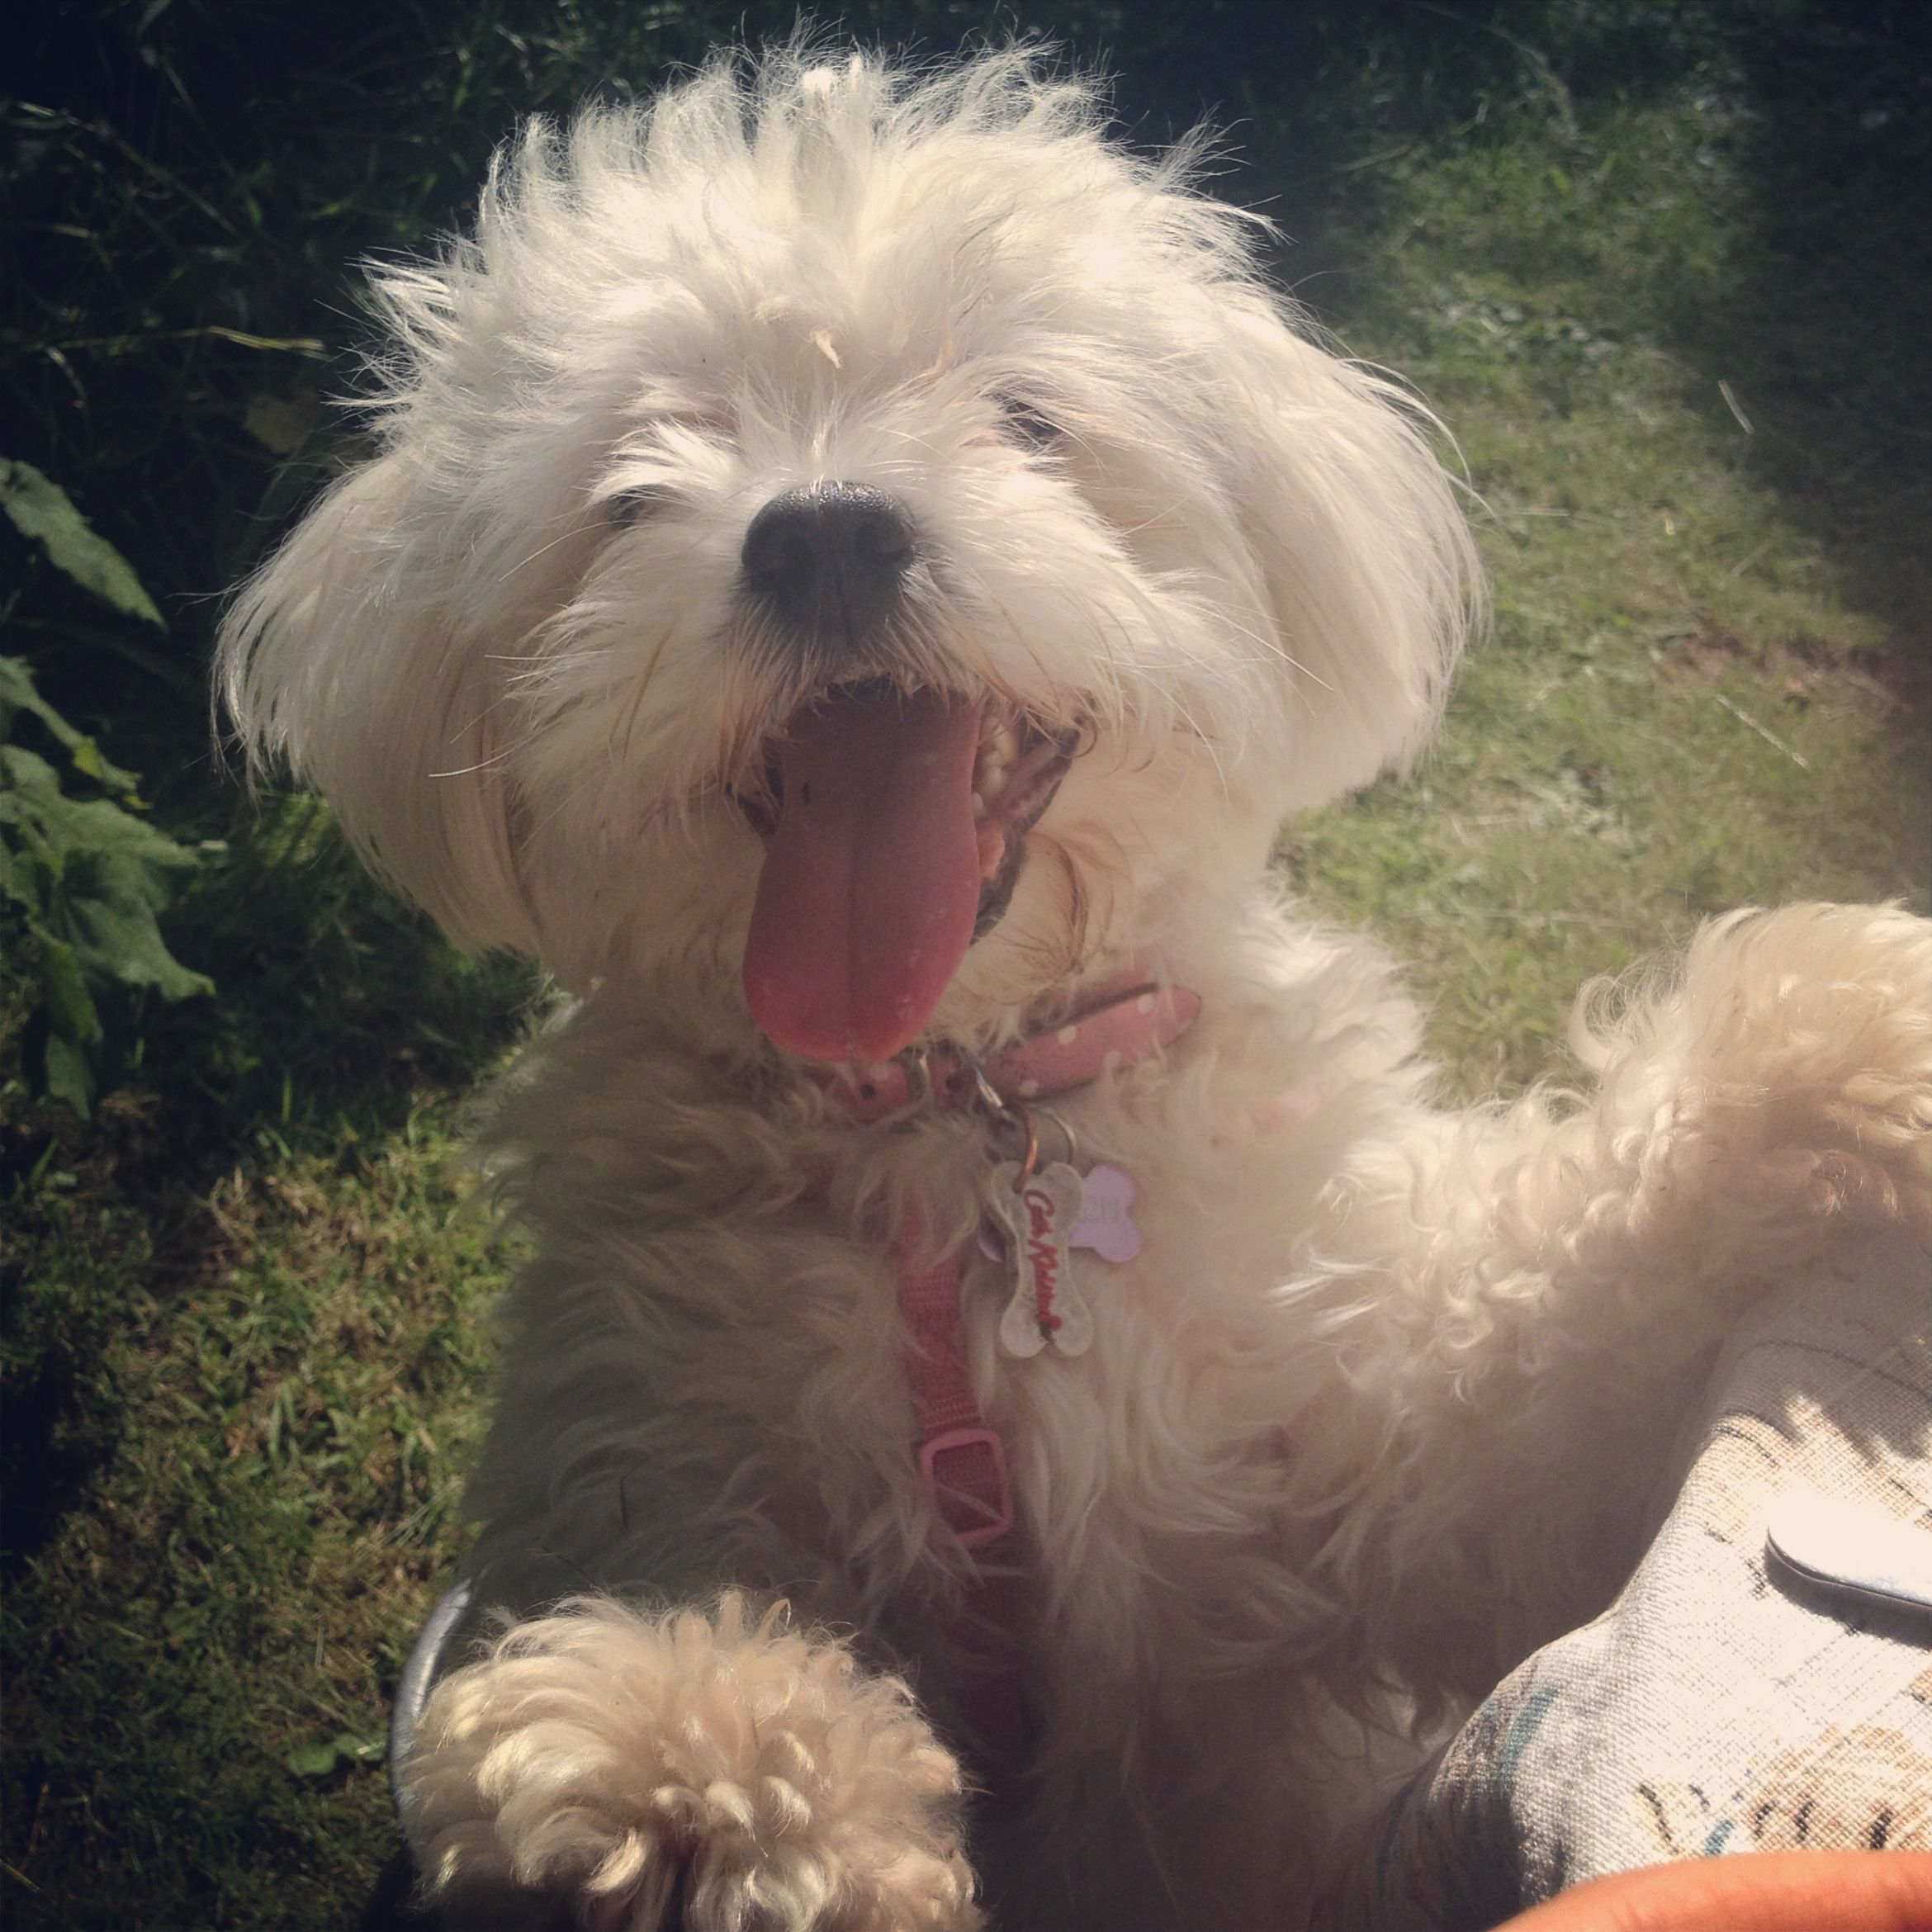 Shichon puppies for sale in kentucky - My Shichon Puppy Lola Bear